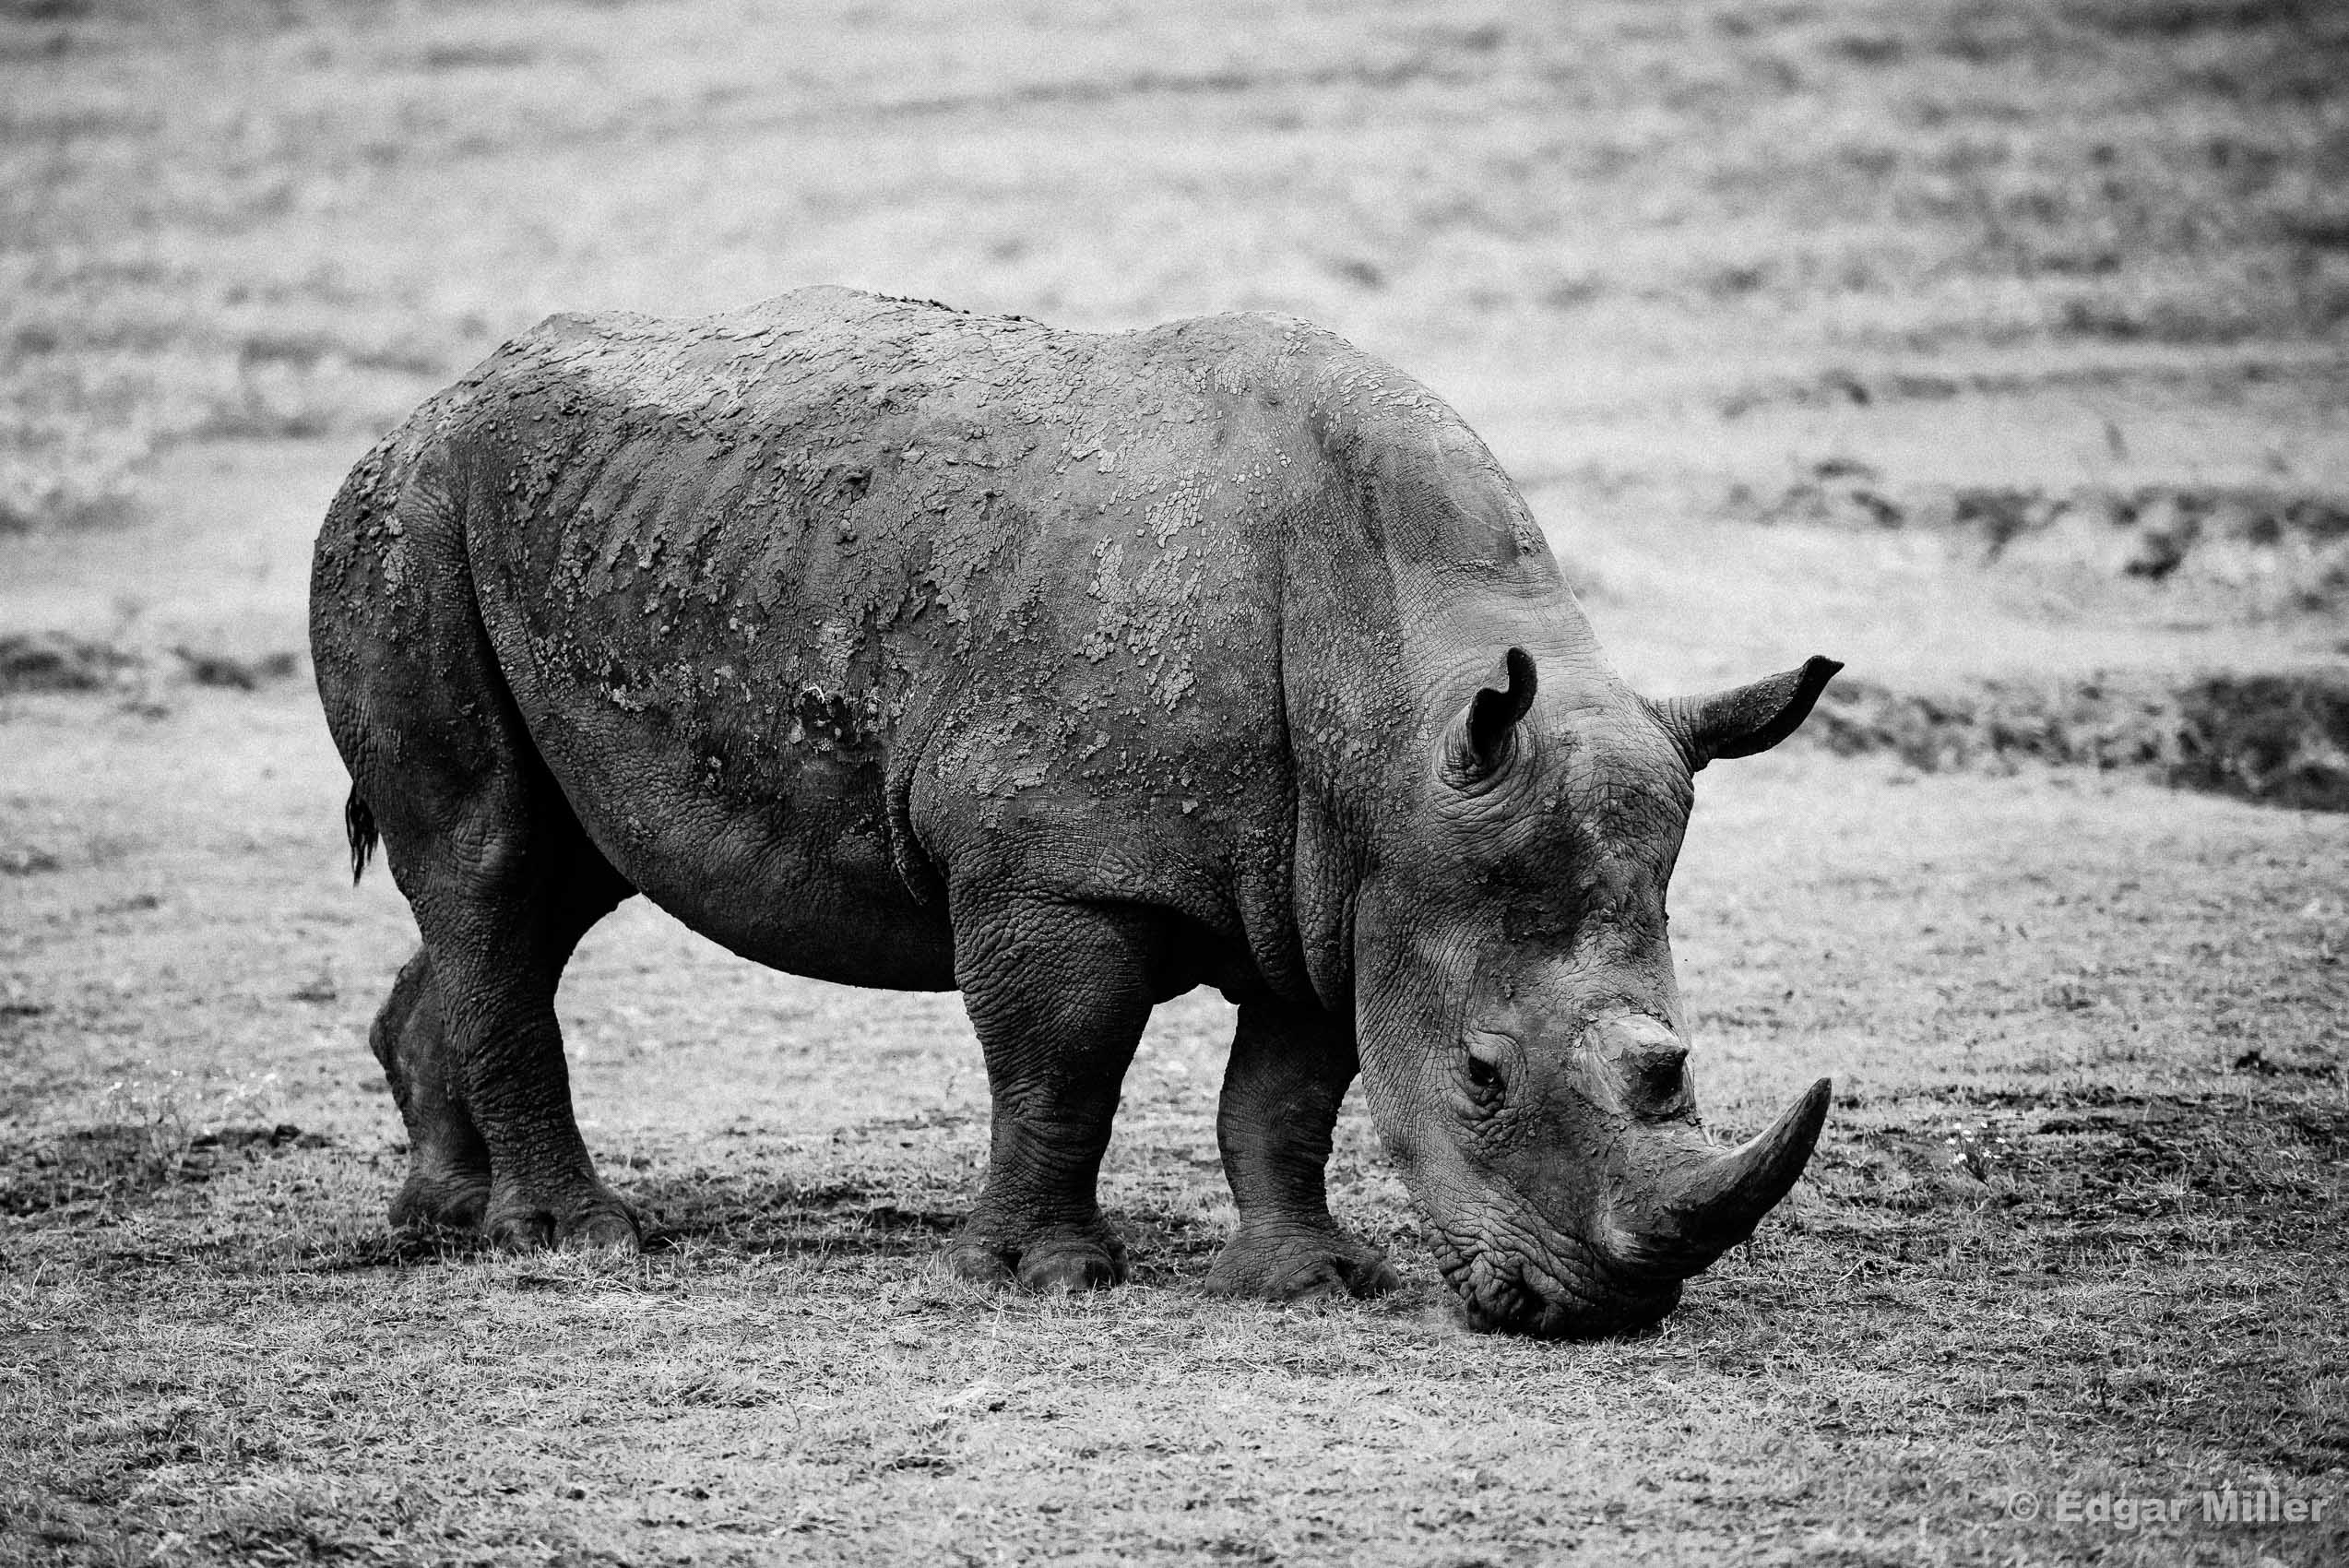 Black & White Black Rhino